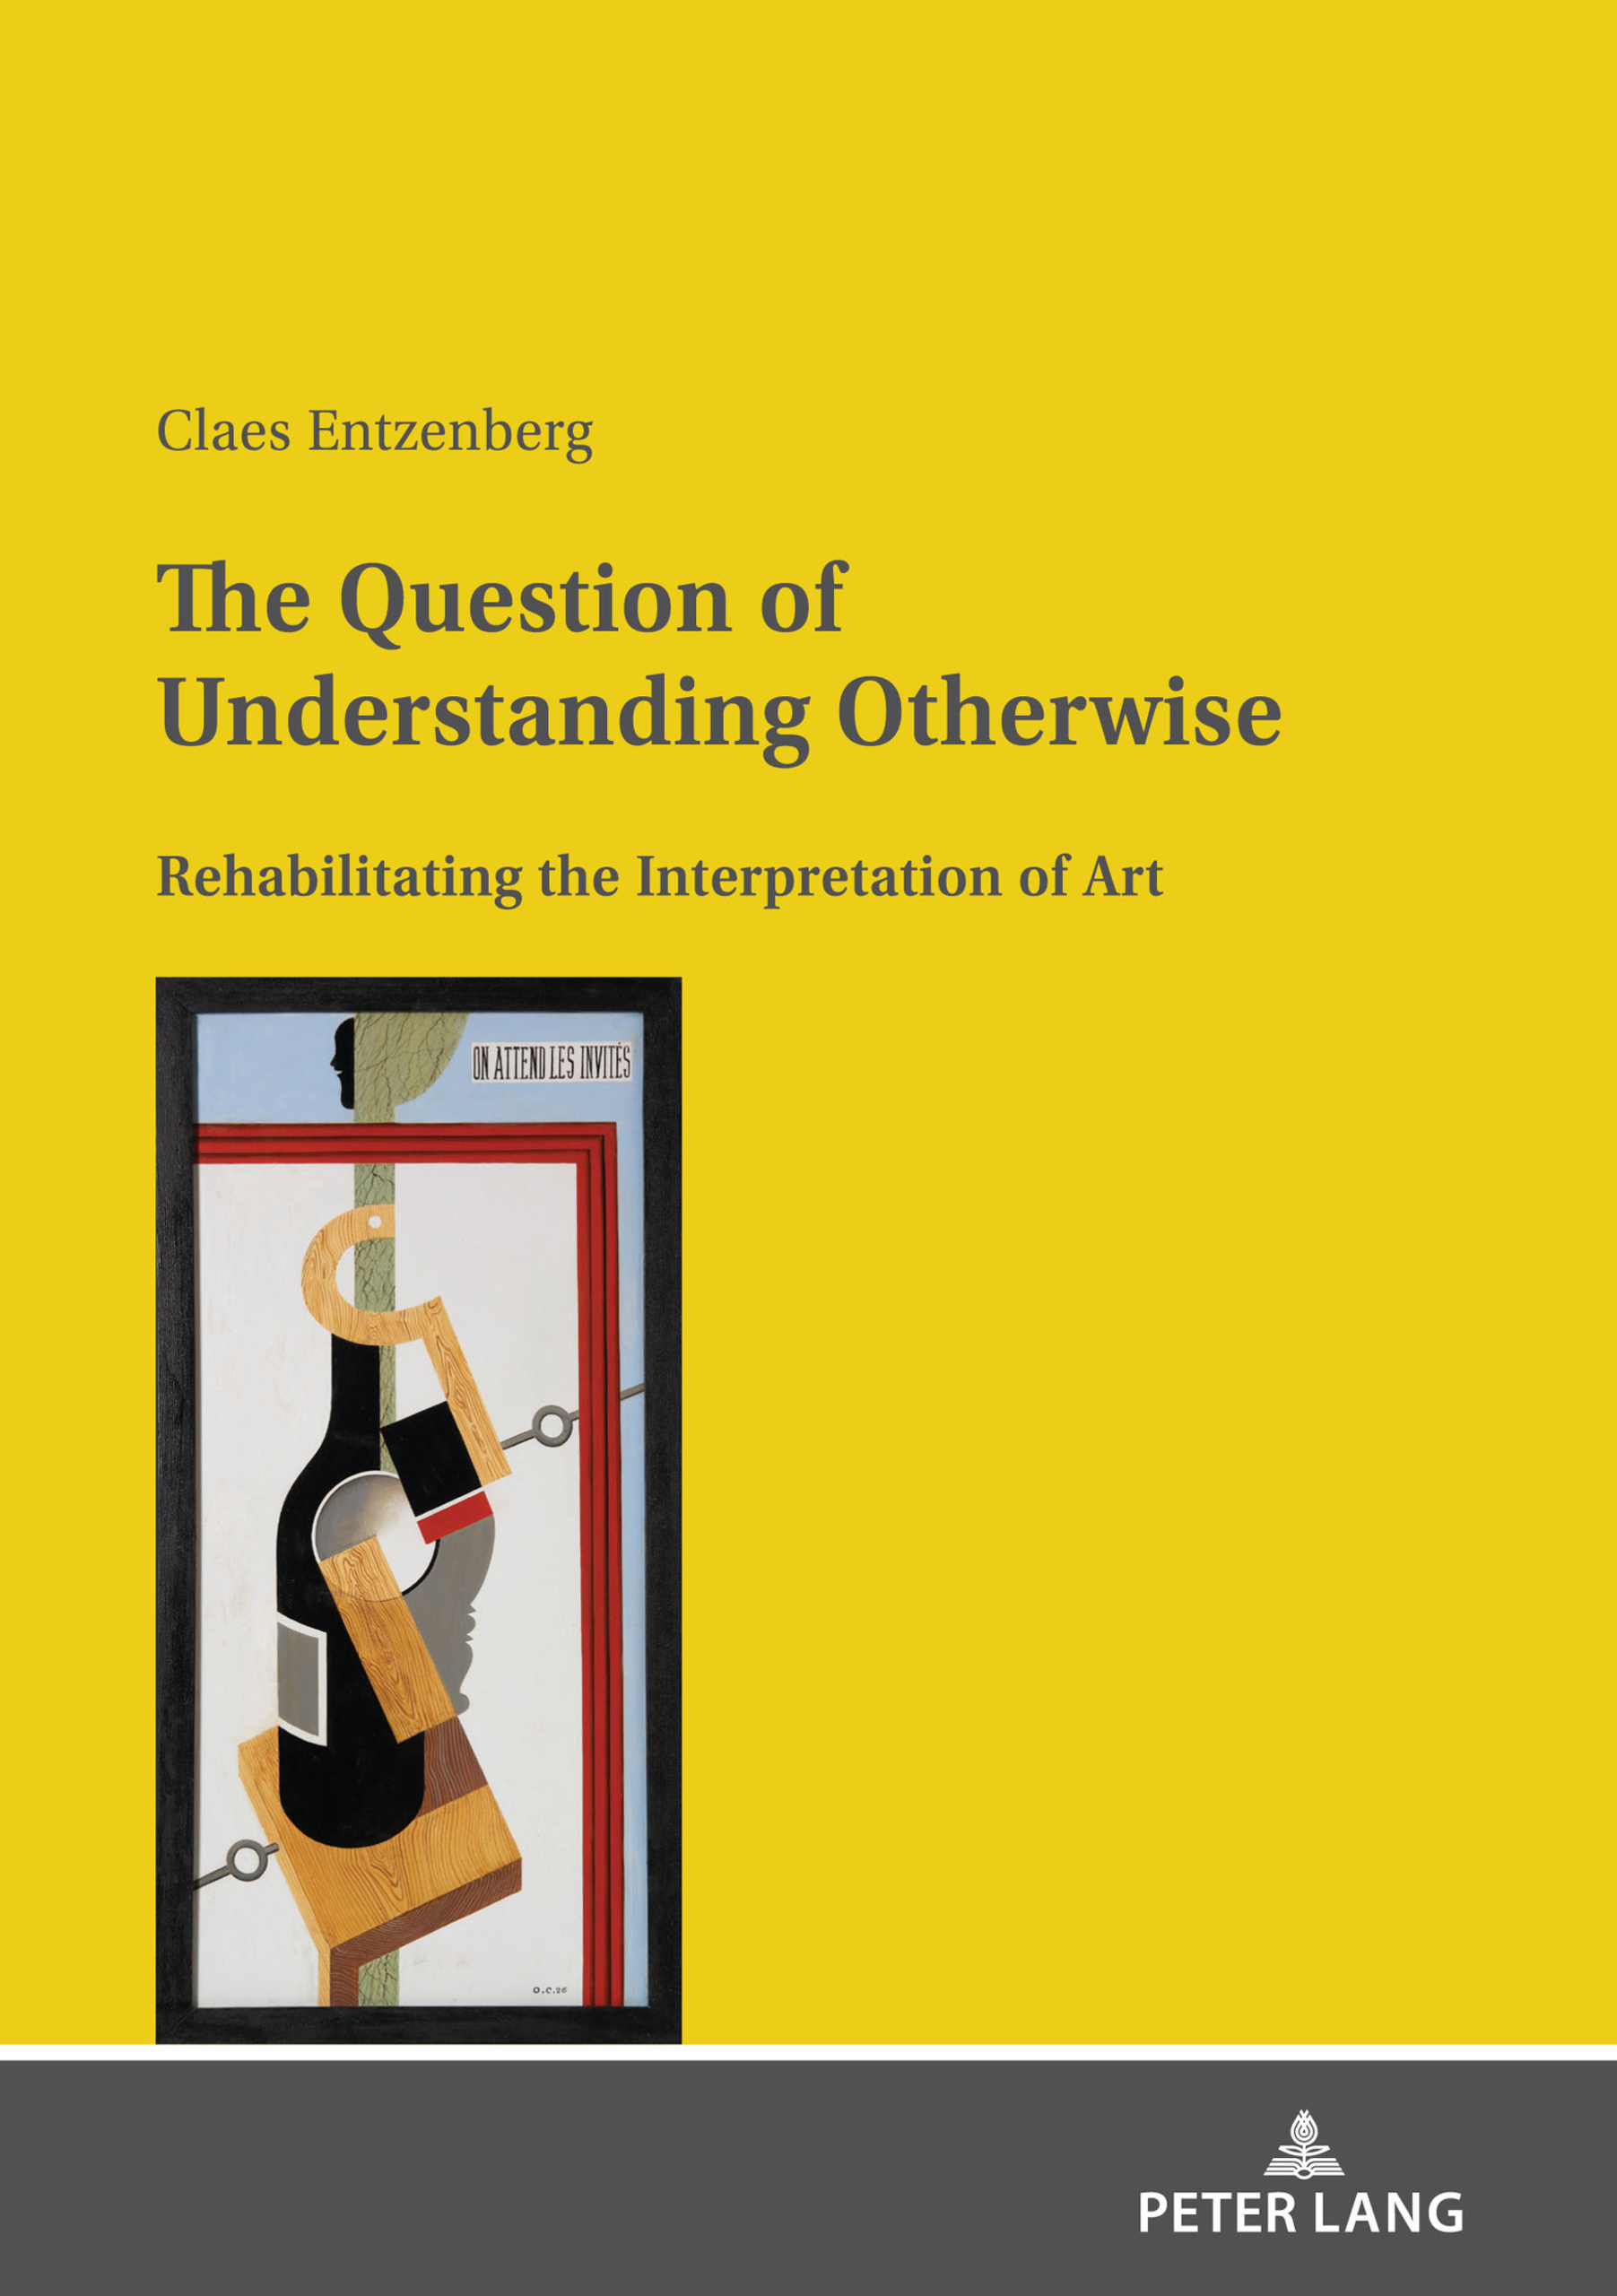 Title: The Question of Understanding Otherwise